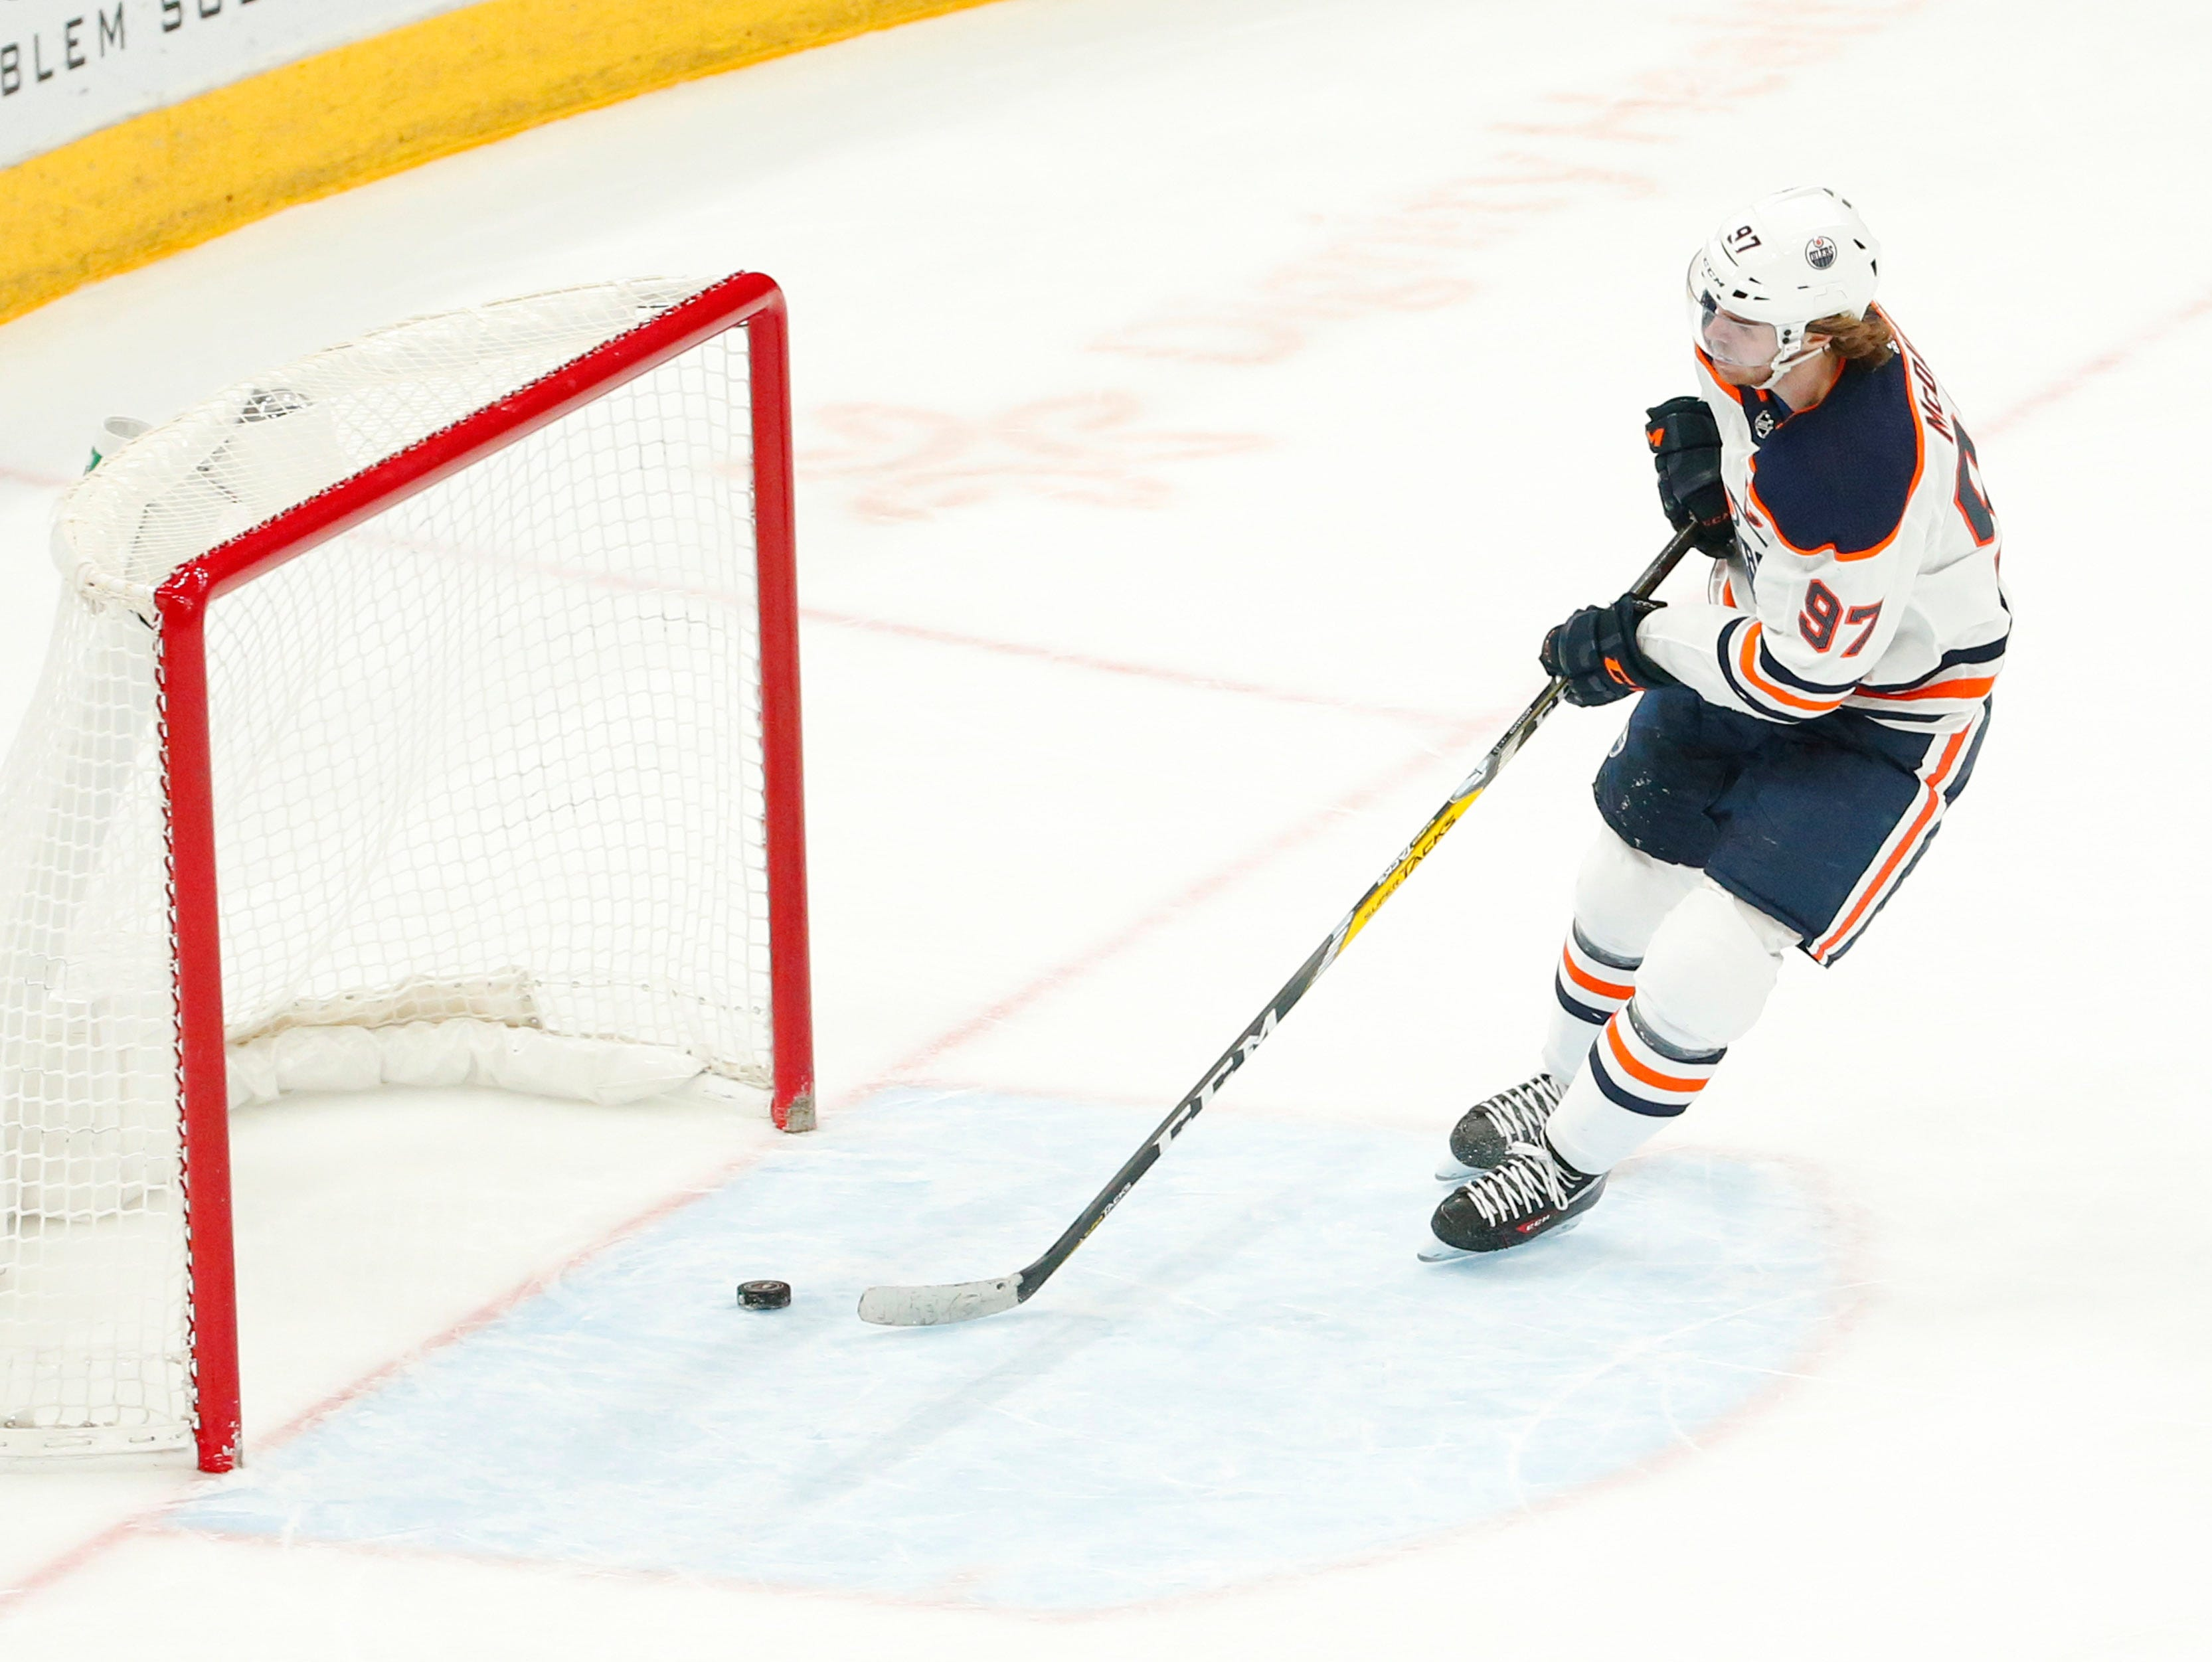 Edmonton Oilers center Connor McDavid (97) scores an empty net goal against the Arizona Coyotes during the third period in Glendale January 2, 2019.